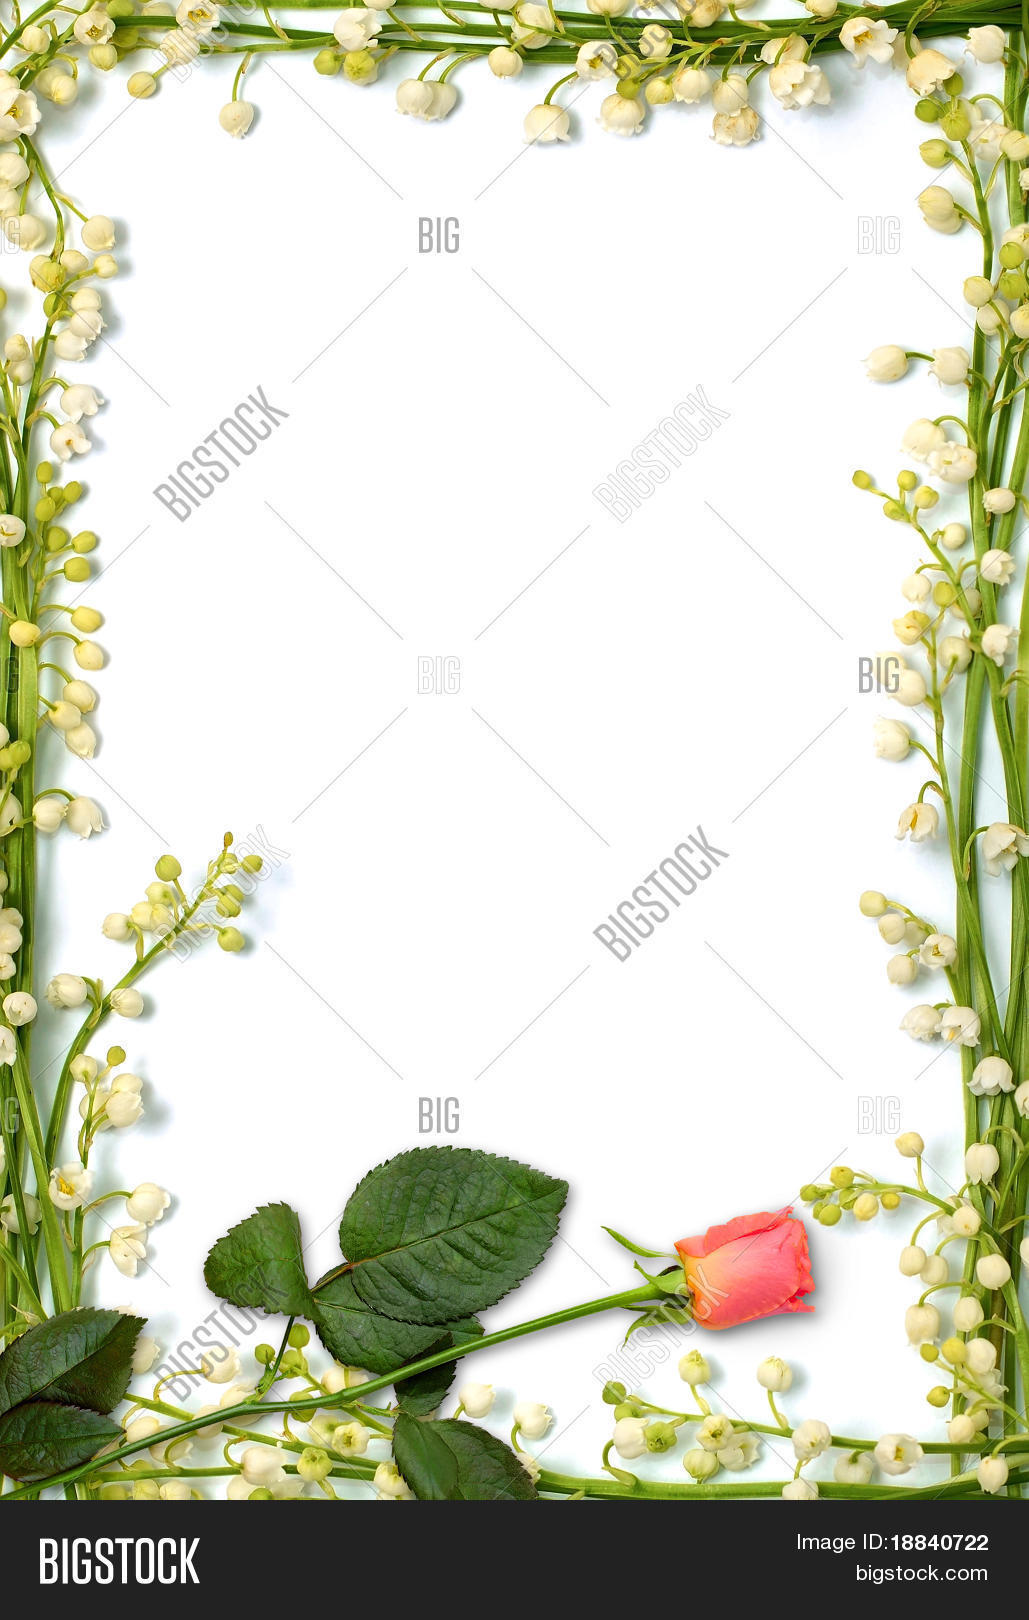 Love Letter Frame Made Image & Photo (Free Trial) | Bigstock